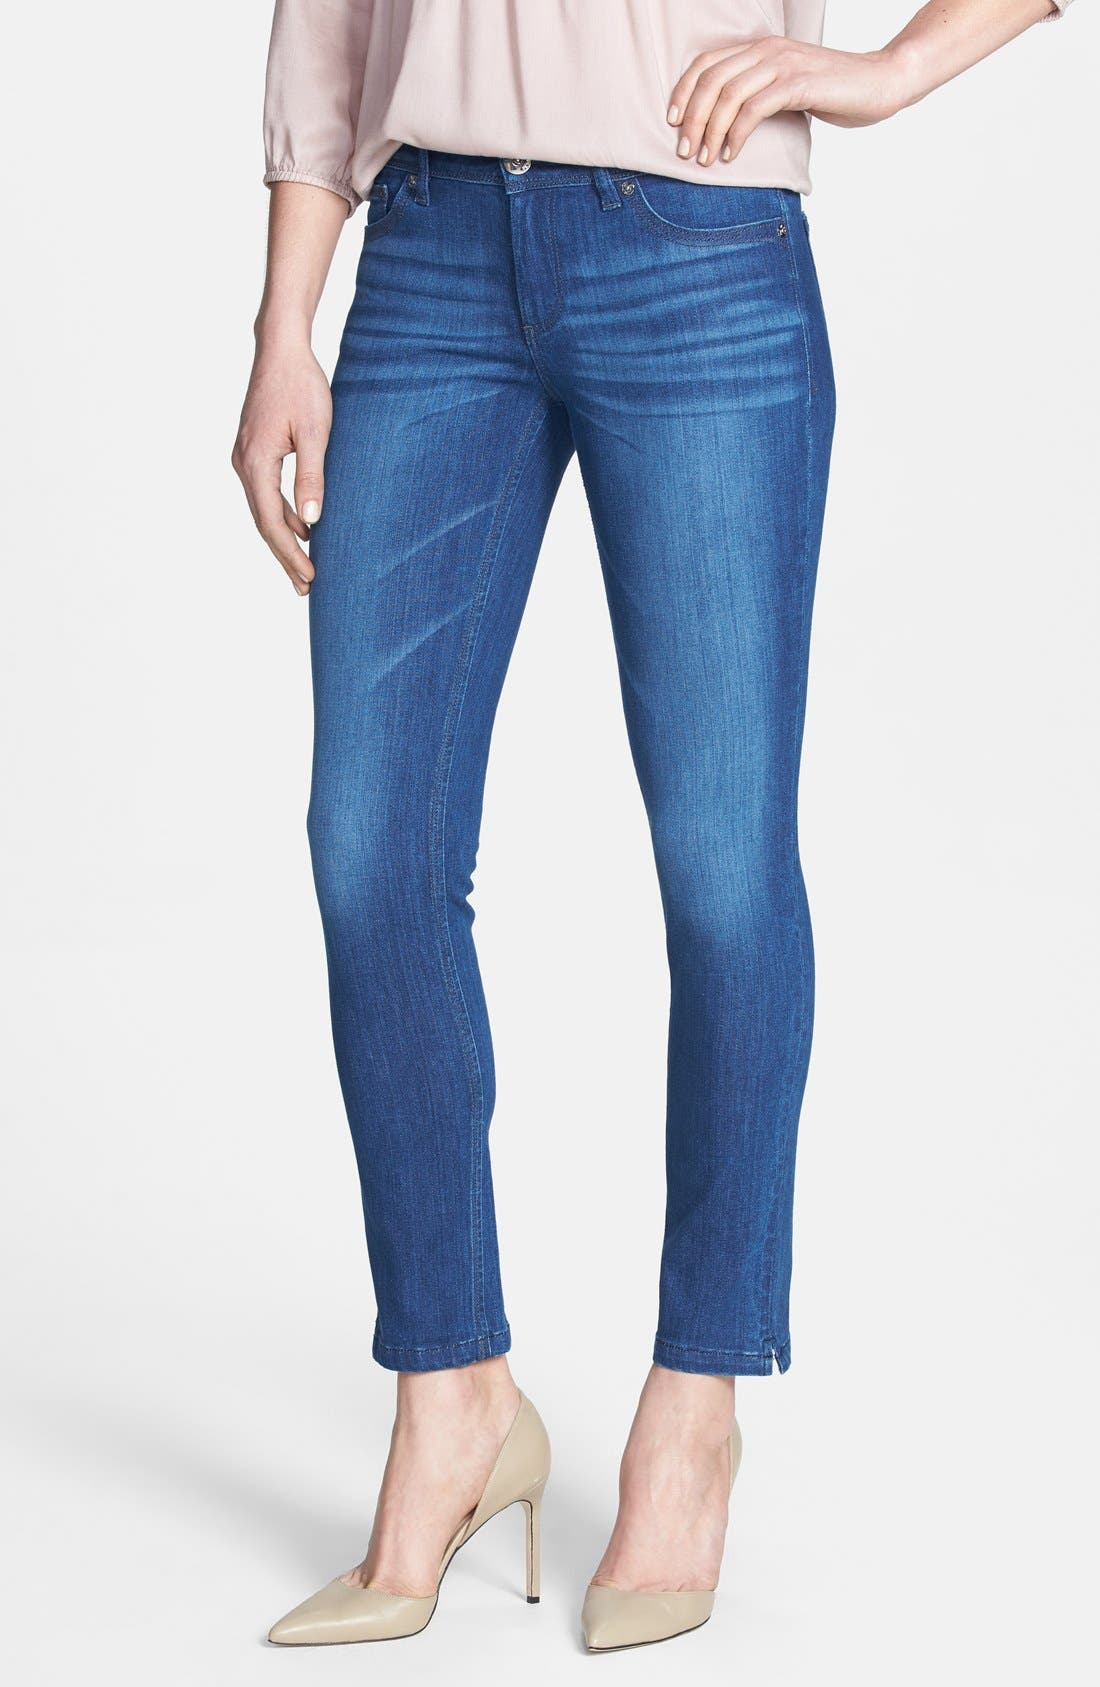 Main Image - DL1961 'Angel' Ankle Cigarette Jeans (Lincoln)